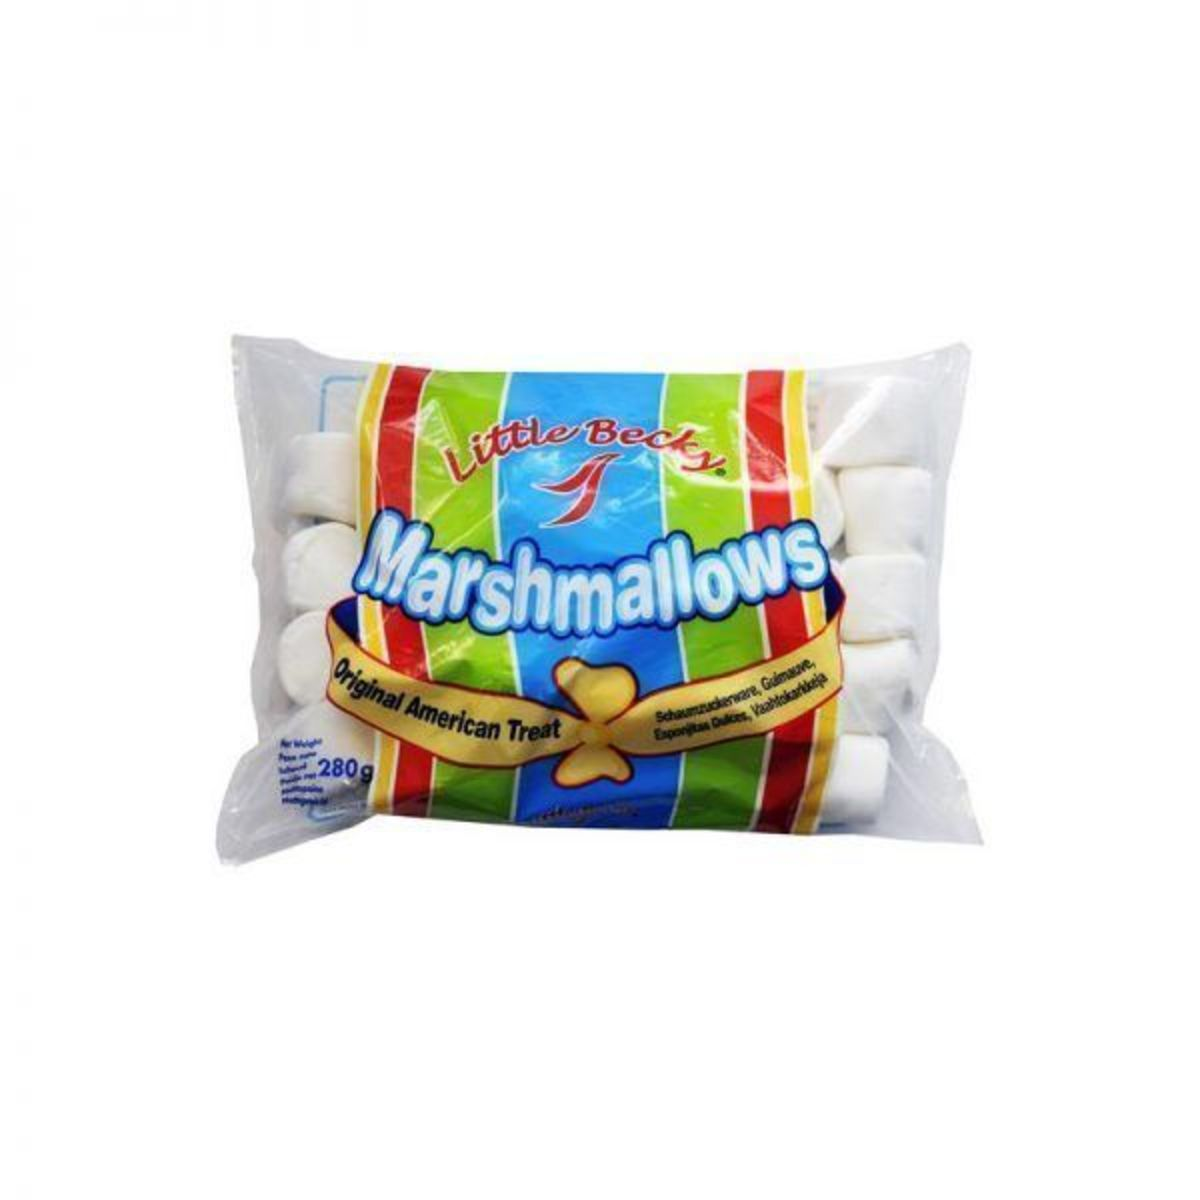 Marshmallows Little Becky 250g tamaño regular